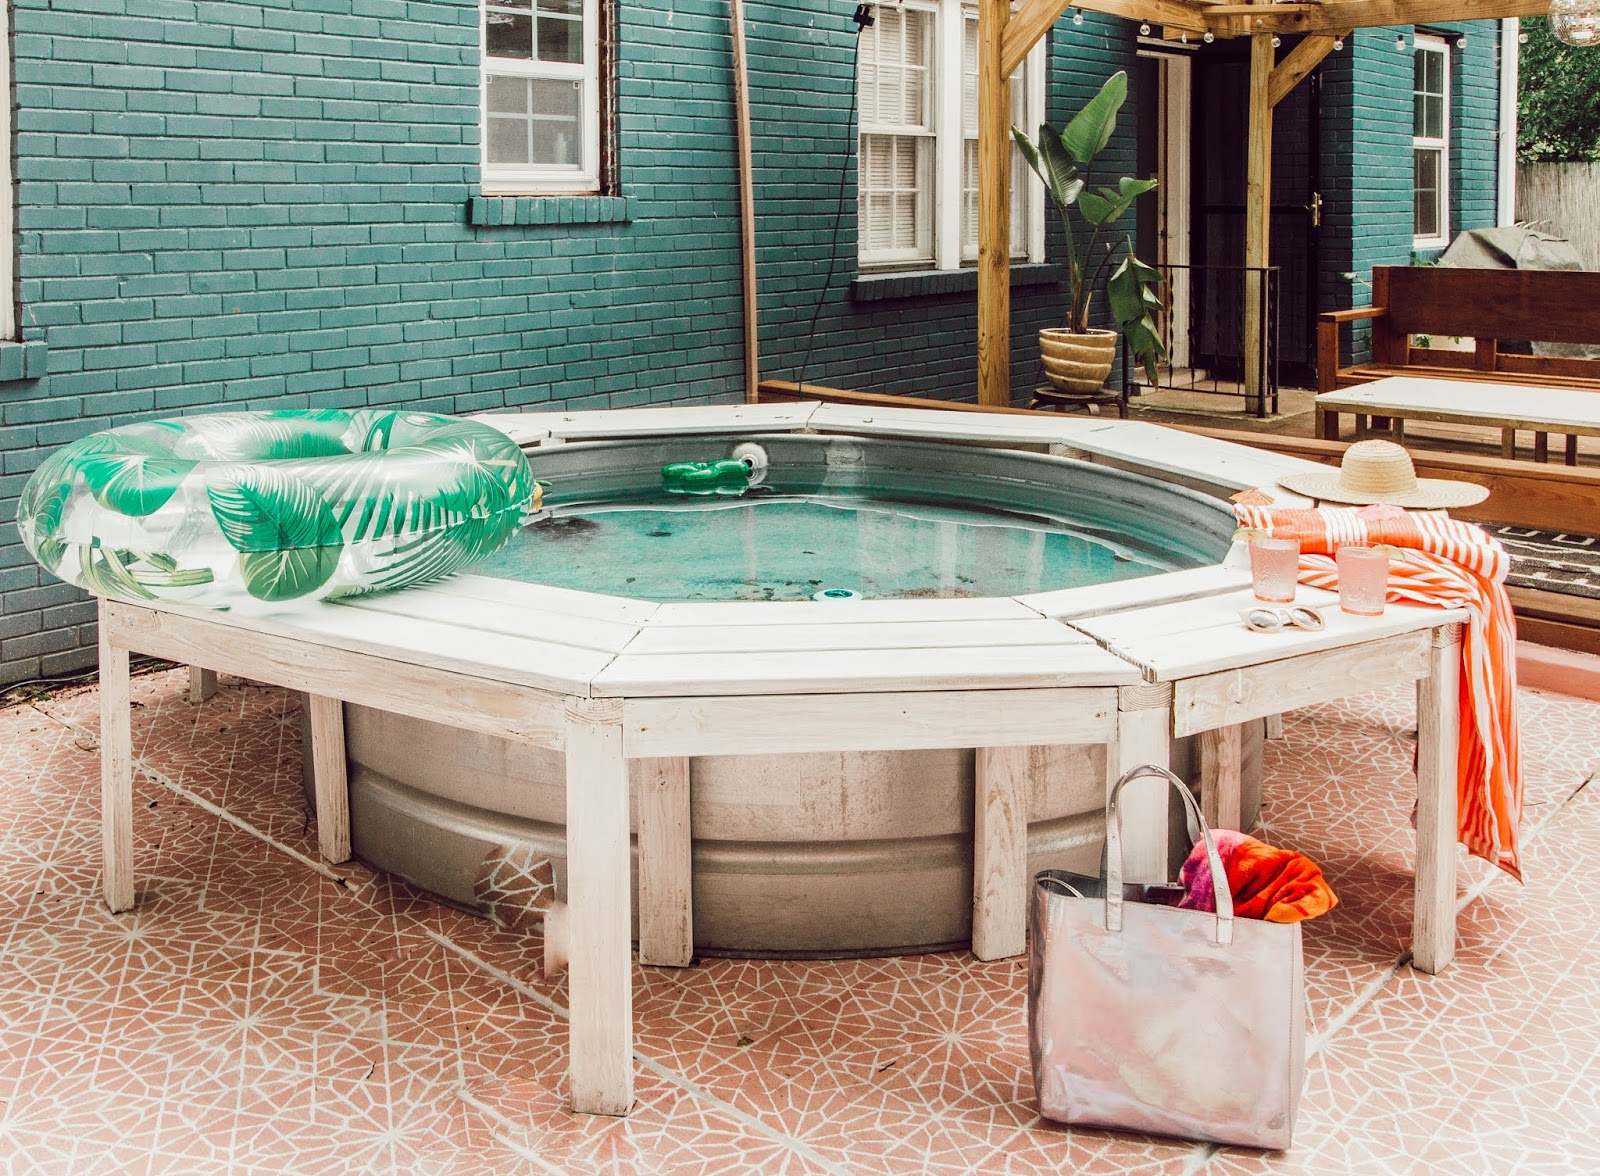 10 Most Frequently Asked Questions About Stock Tank Pools